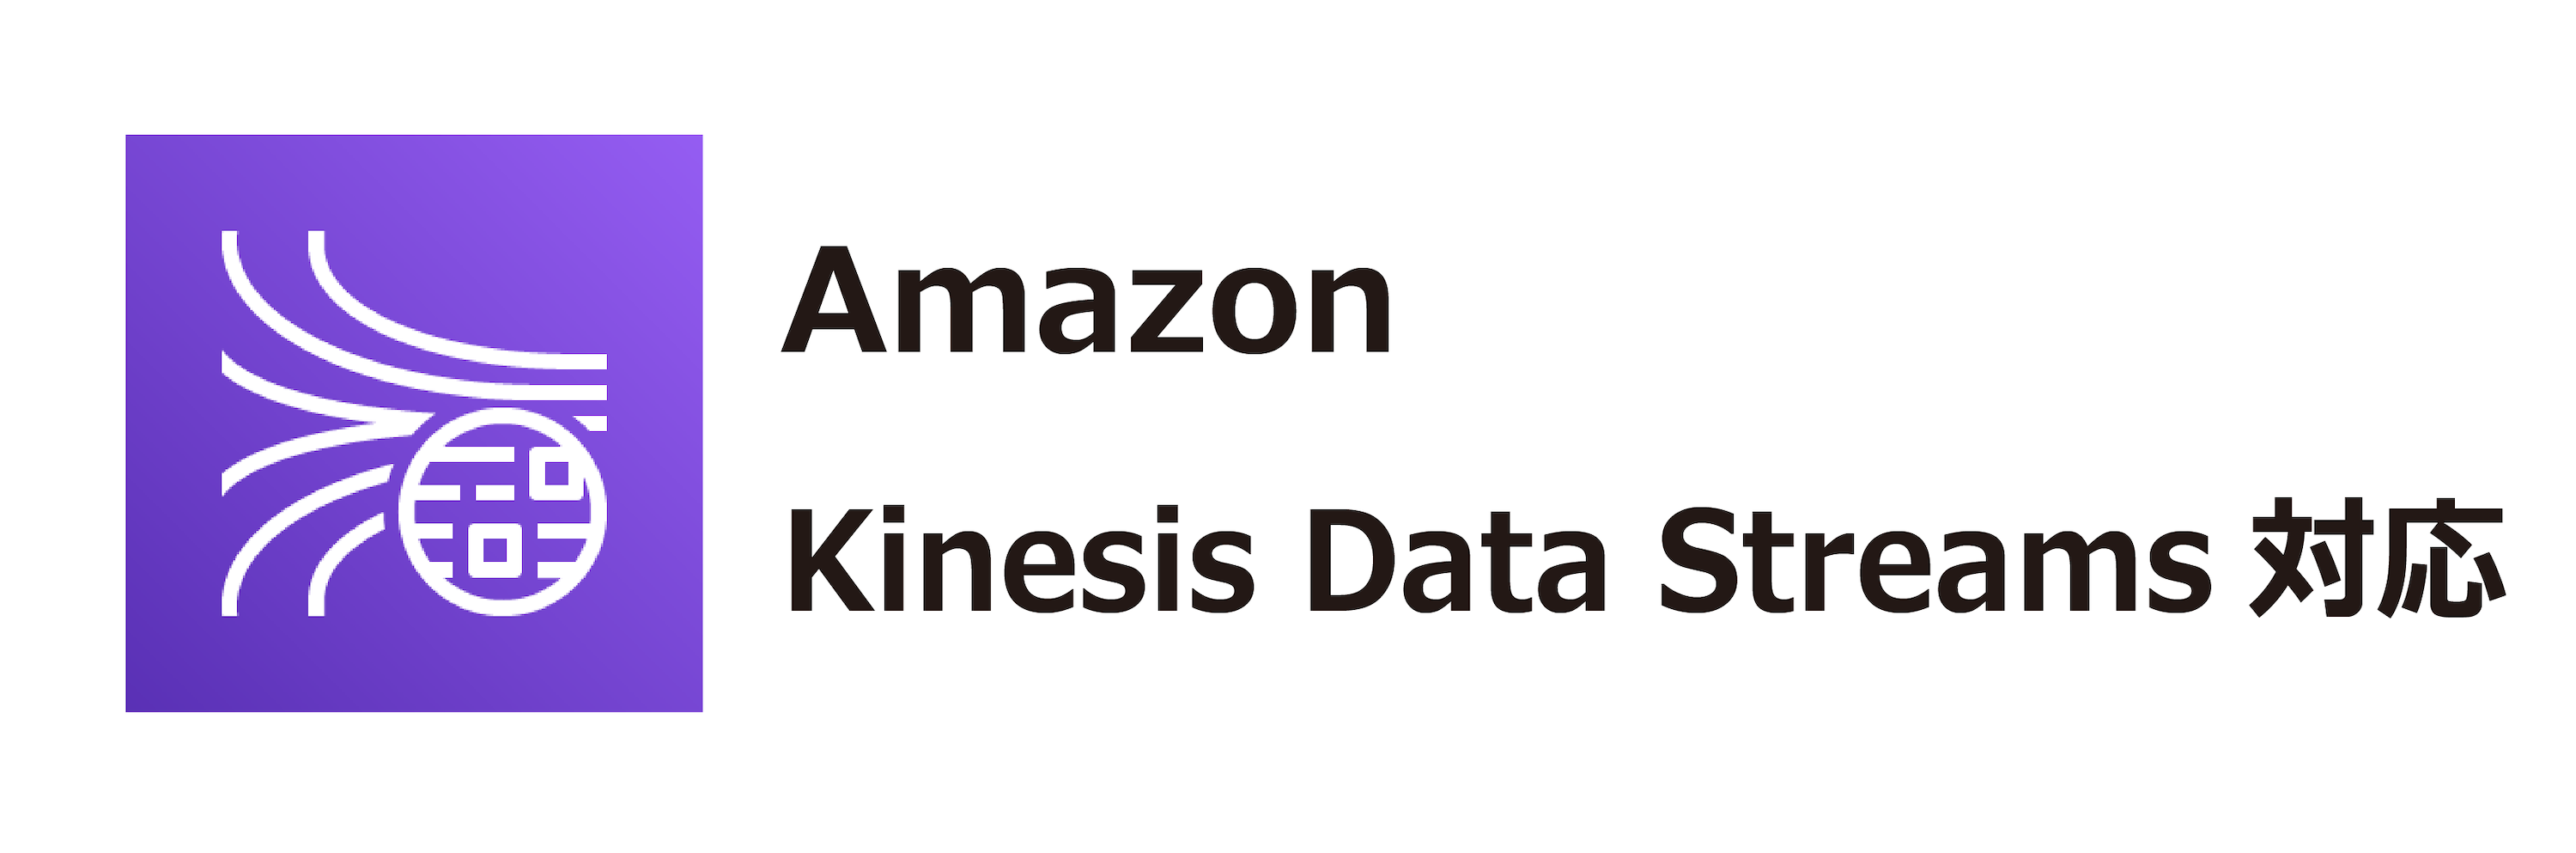 Amazon Kinesis Data Streams対応